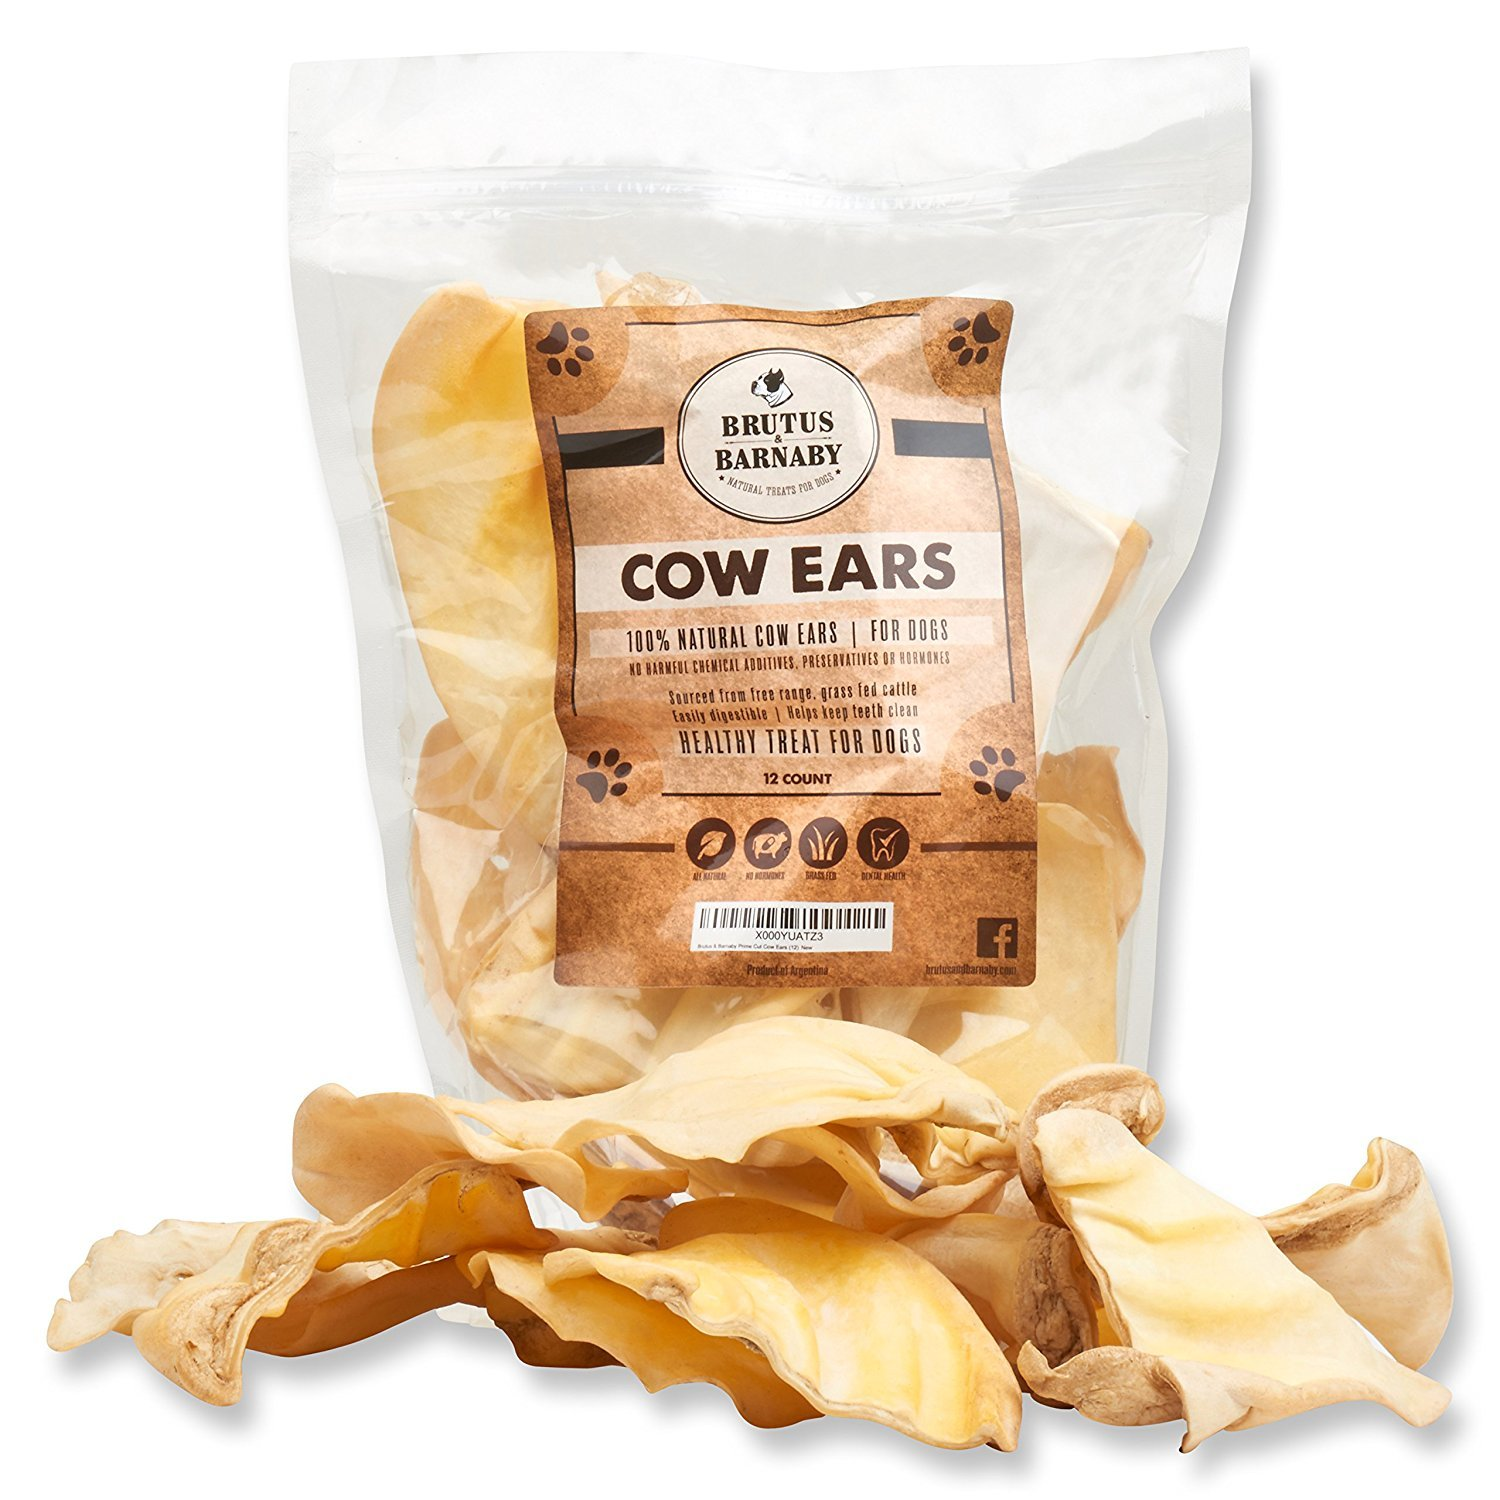 12 All Natural, Whole Cow Ears for Dogs by Brutus & Barnaby, Harvested from Free Range, No Hormone's Added, Grass Fed Cattle, USDA FDA Approved